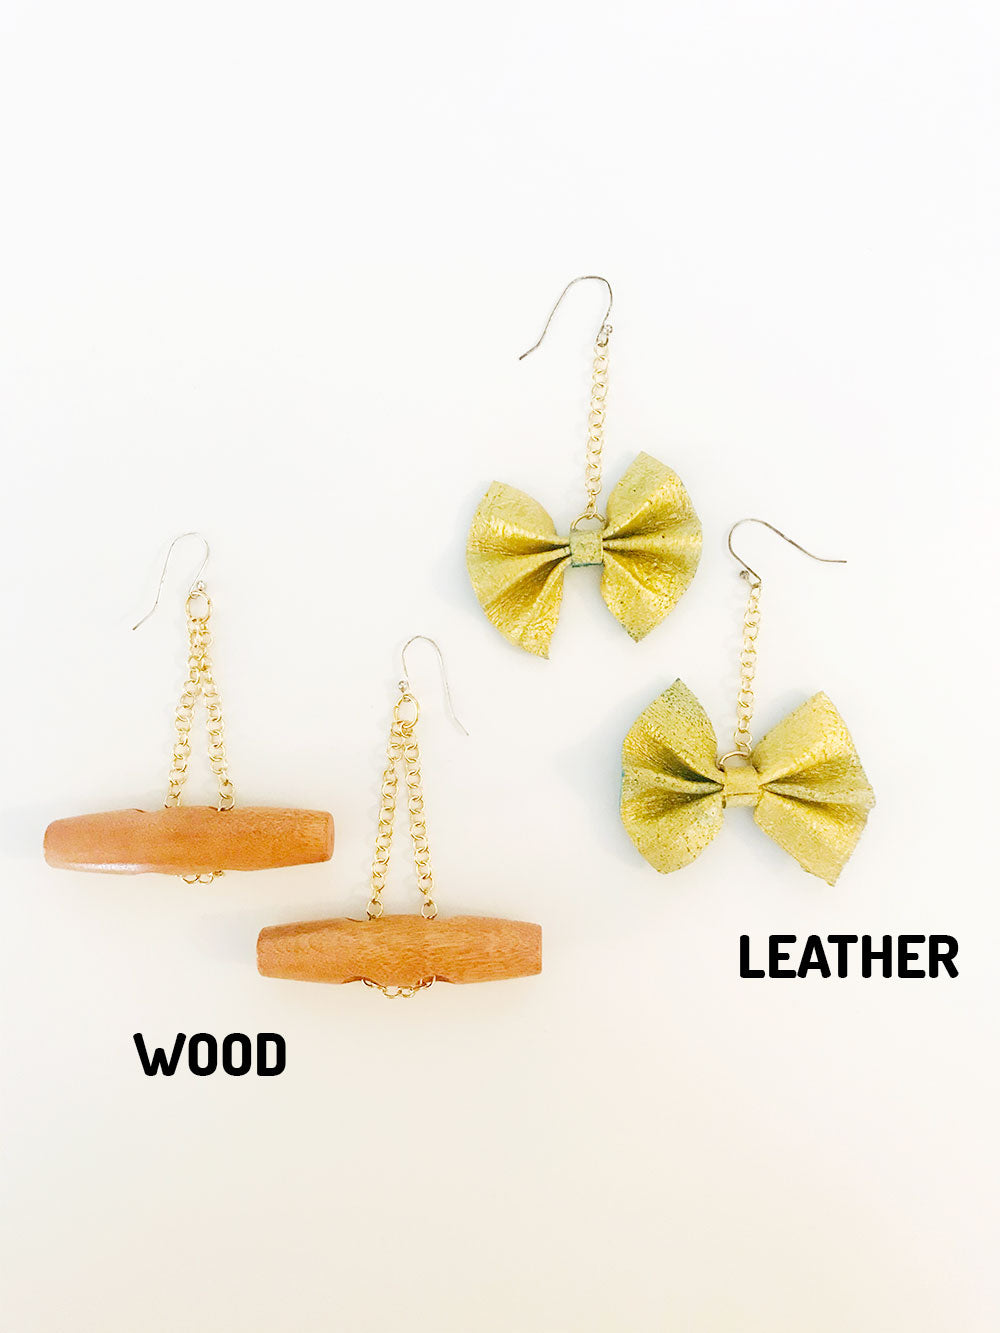 Two pairs of earrings on a white background. On the left: wood toggle buttons on gold inverted v-shape chain. Text below reads WOOD. On the right: gold painted leather bow on gold chain. Text below reads LEATHER.